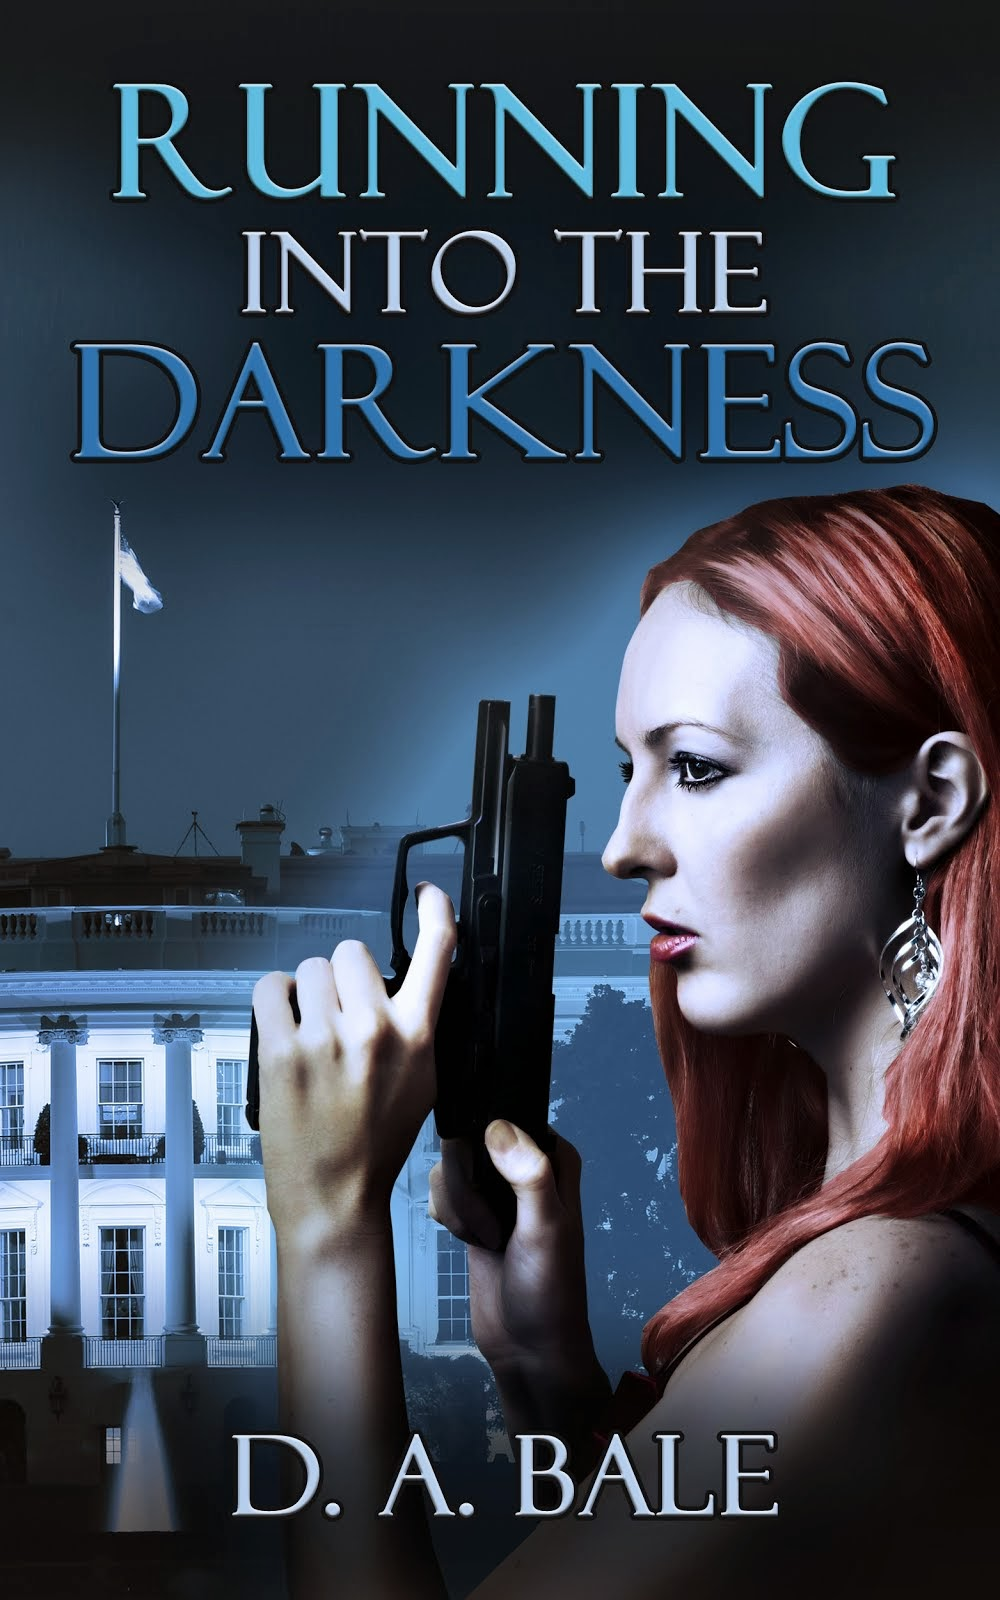 FREE Running into the Darkness eBook on Amazon